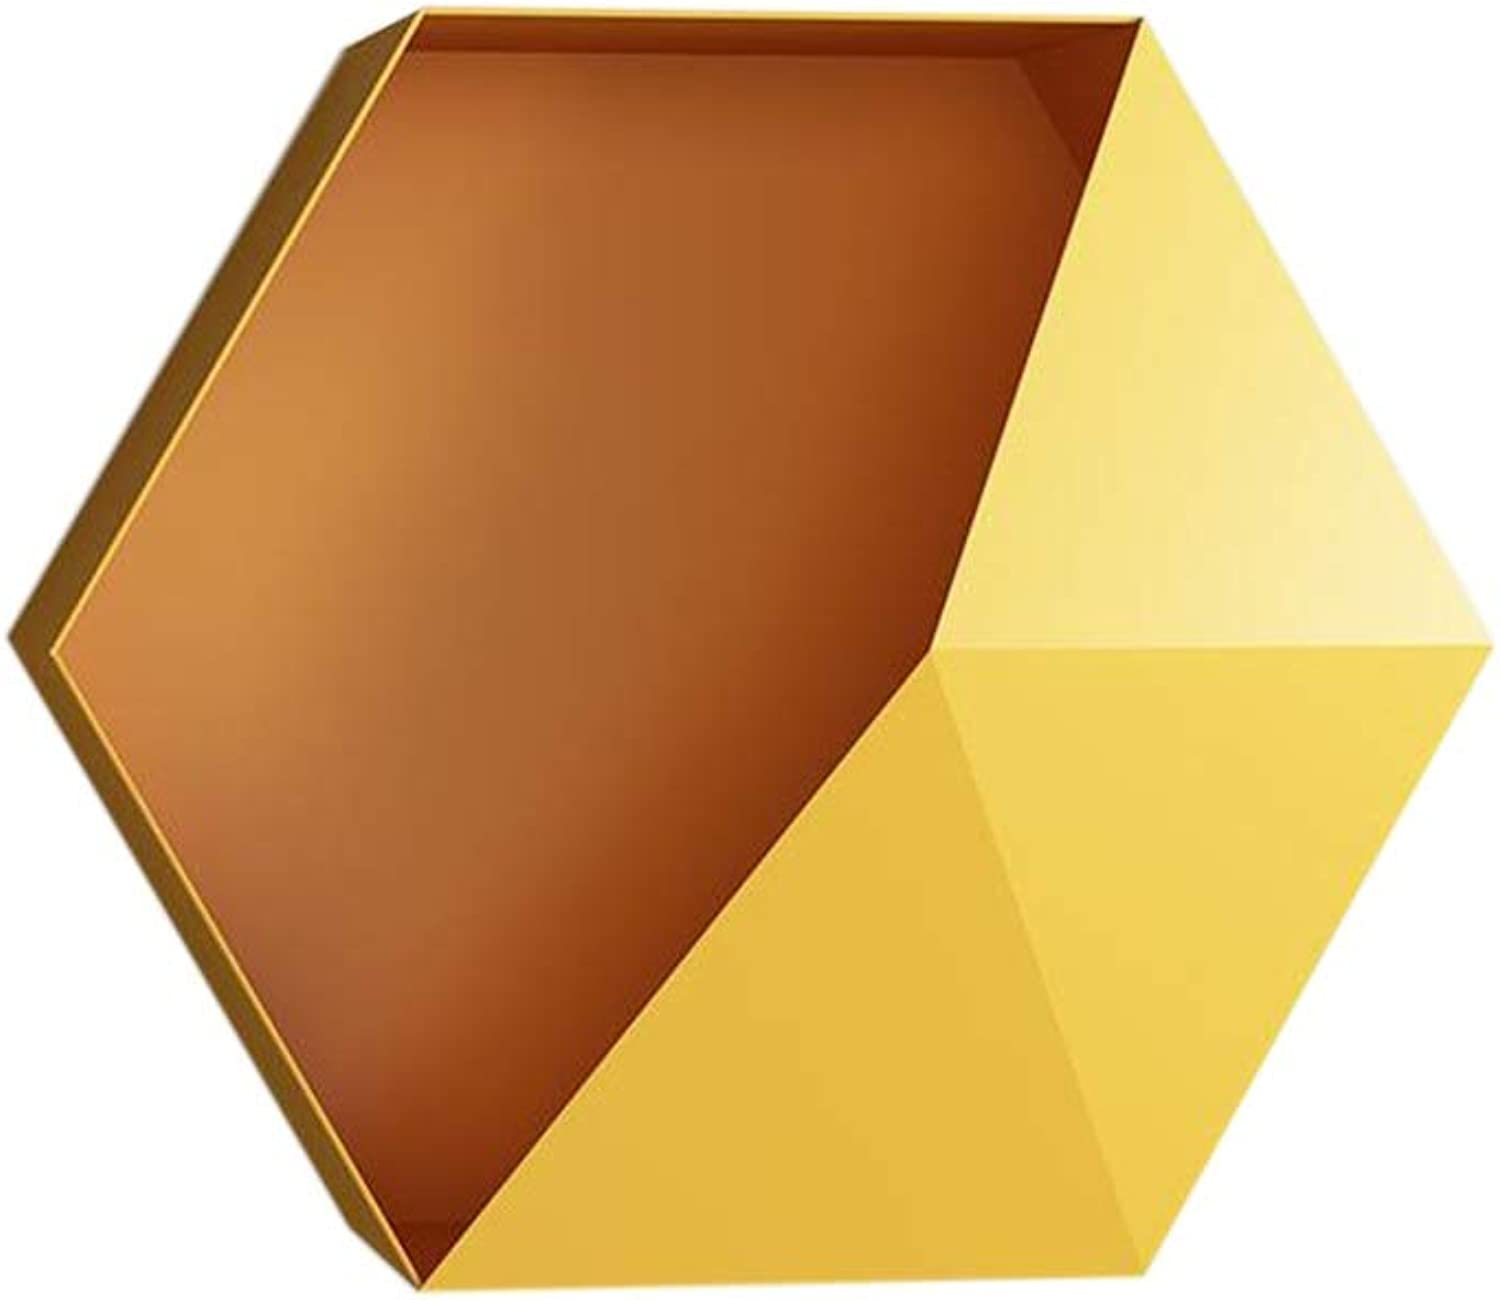 JCAFA Shelves Hexagonal Geometric Iron Metal Wall Shelf Hanging Decoration for Living Room Storage Floating Shelves Wall Mount (color   Yellow, Size   15.74  4.72  13.58in)